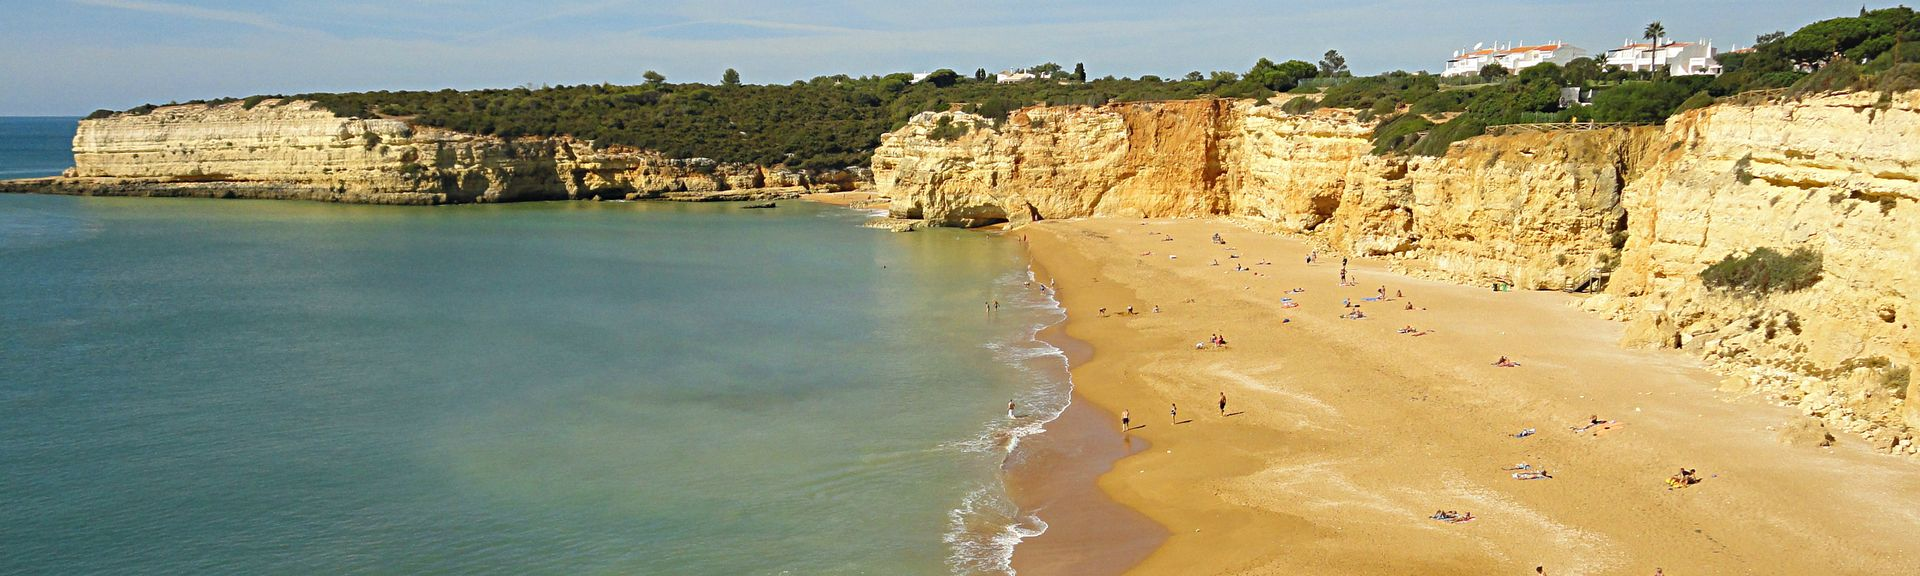 Praia da Luz, Lagos, Faro District, Portugal